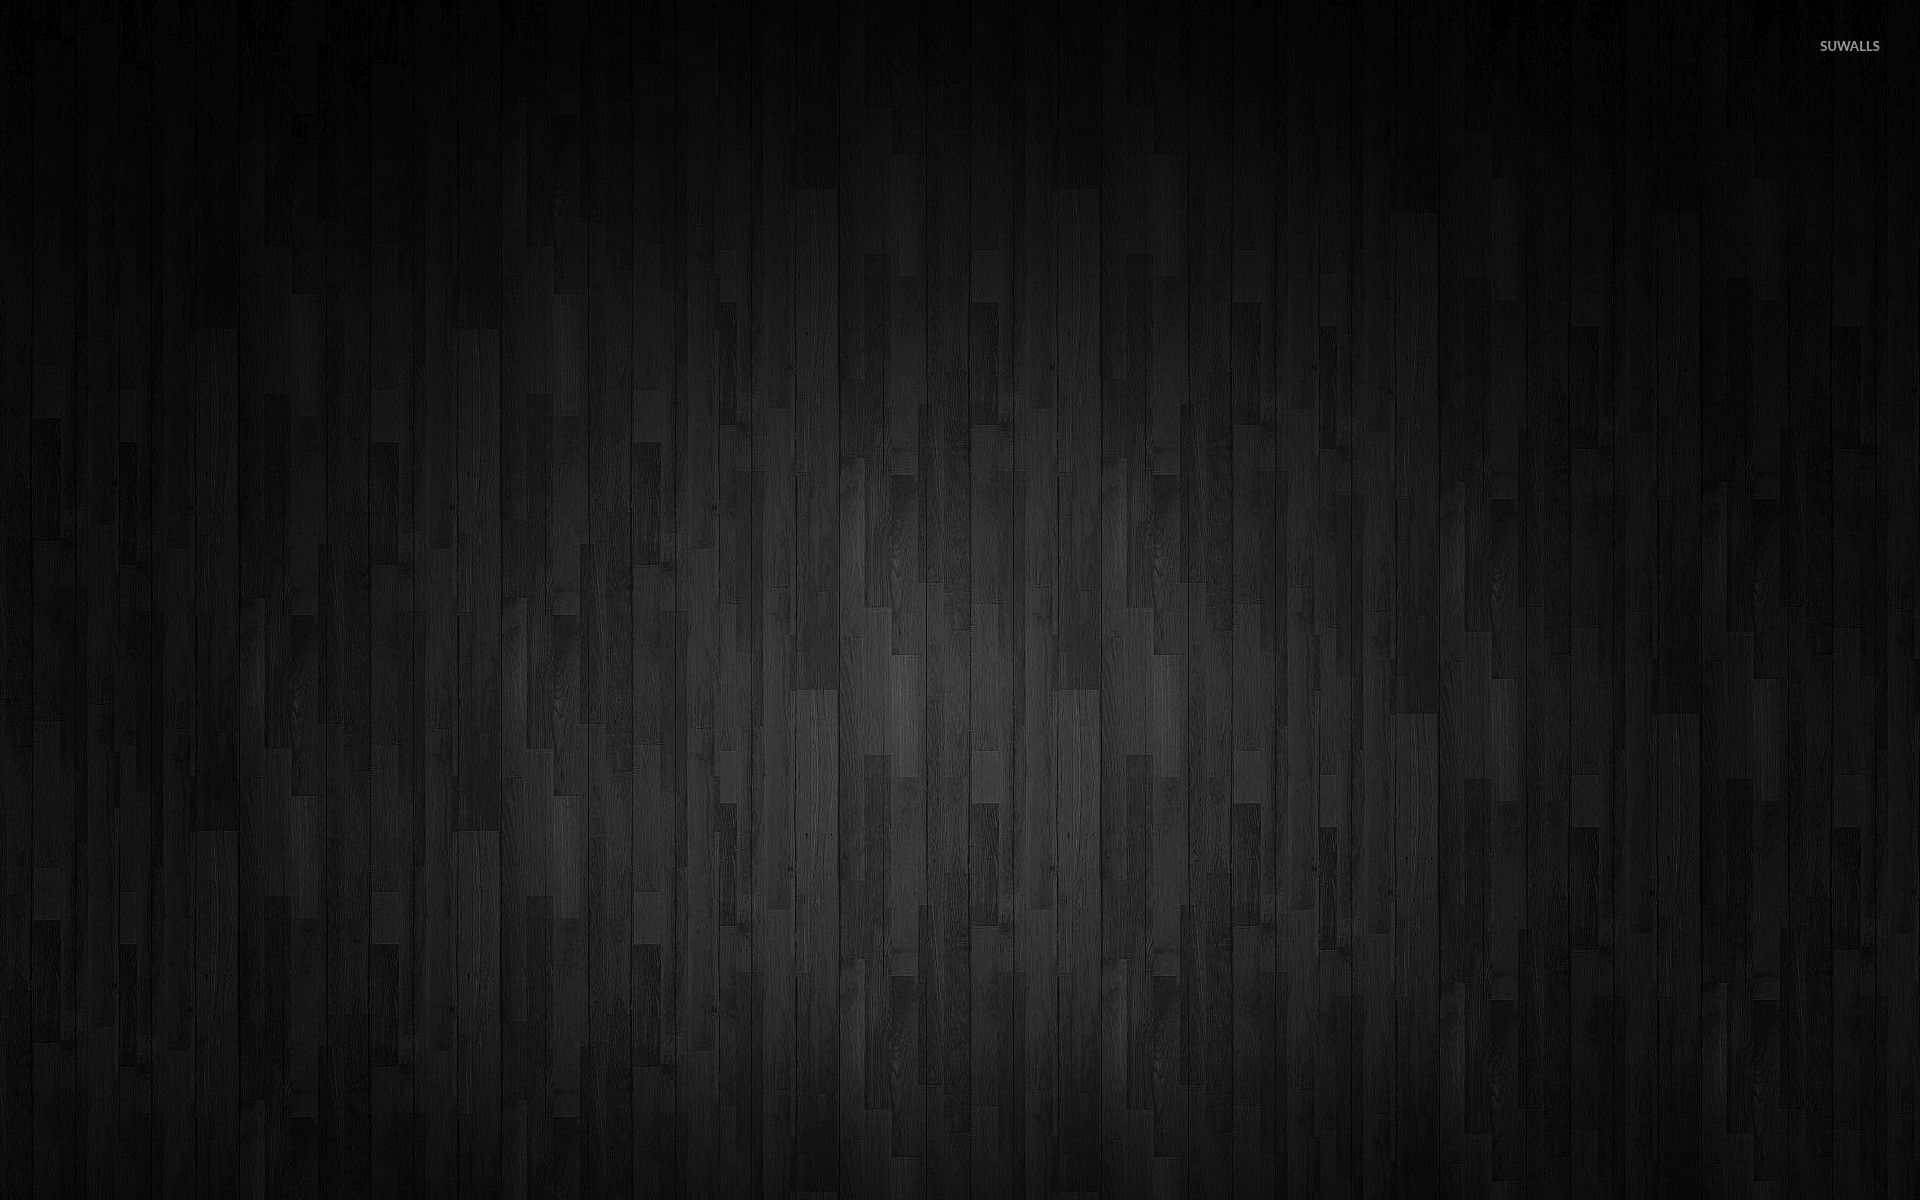 Horizontal Dark Gray Wooden Panels Wallpaper Digital Art HD Wallpapers Download Free Images Wallpaper [1000image.com]